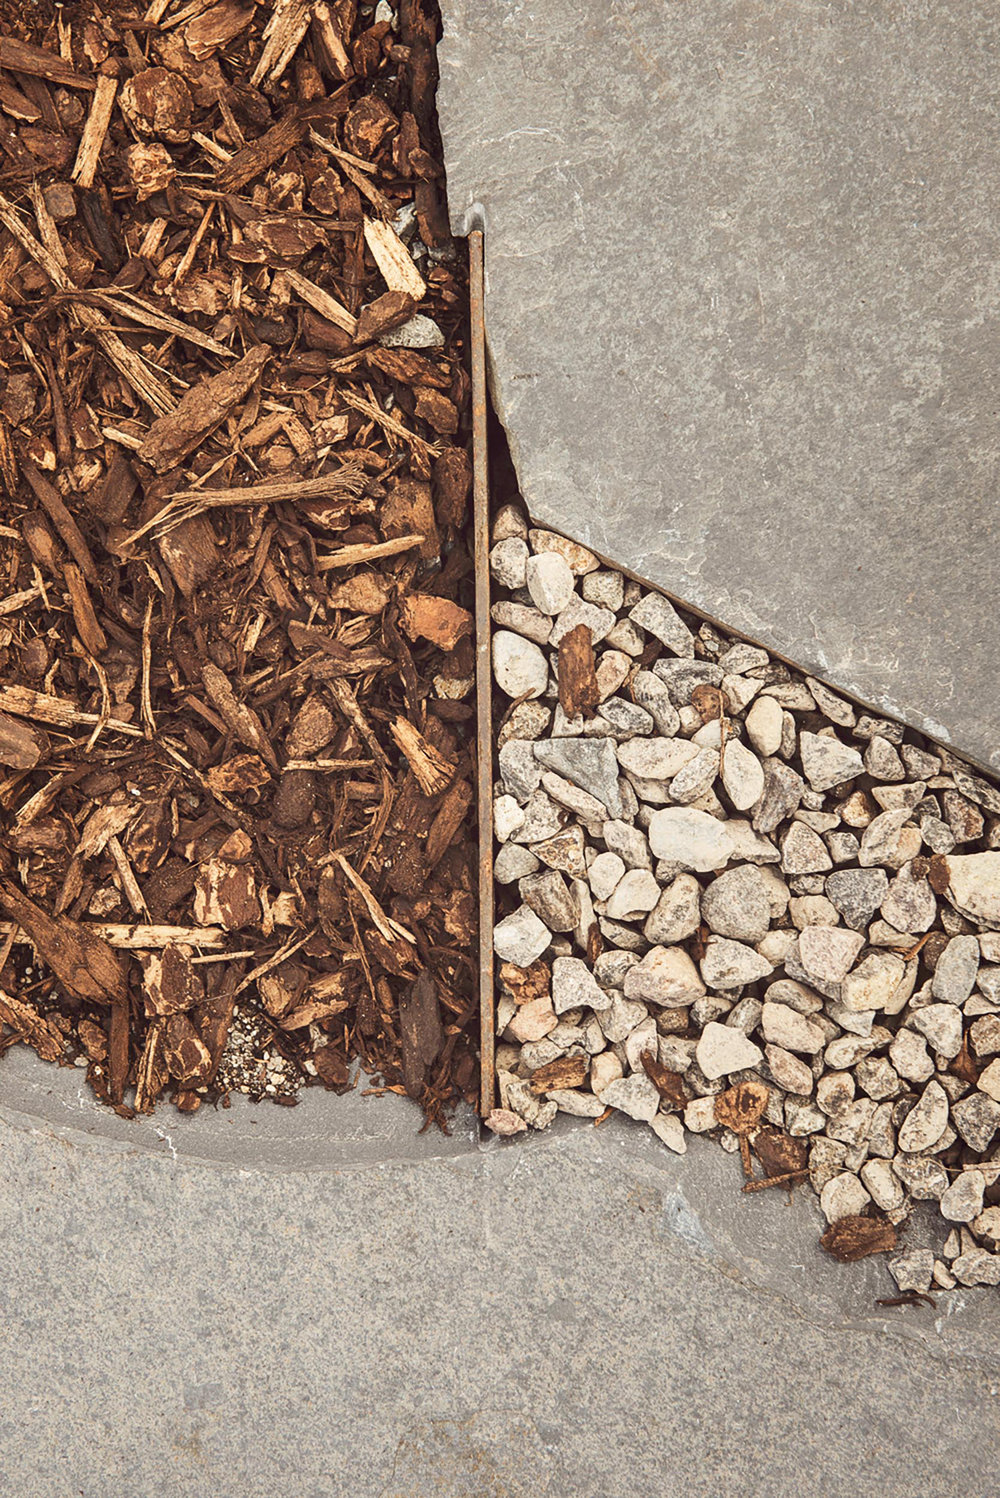 mulch meets crushed gravel + flagstone close up + landscape materials art shot